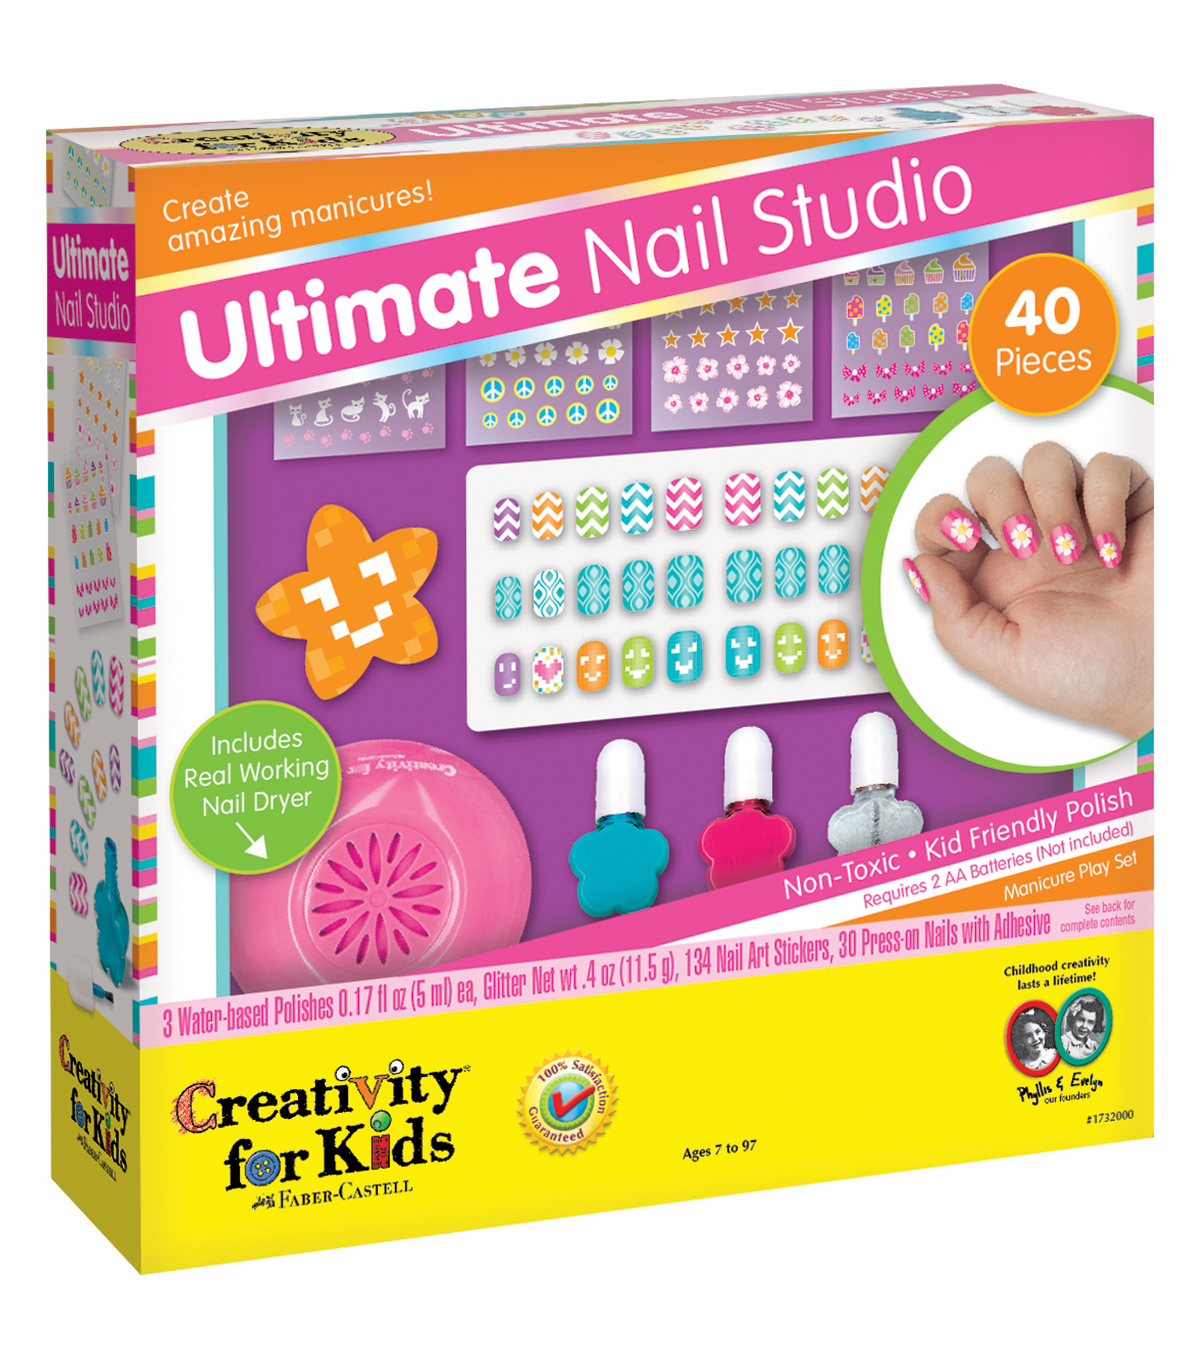 Creativity For Kids Kit Ultimate Nail Studio Joann